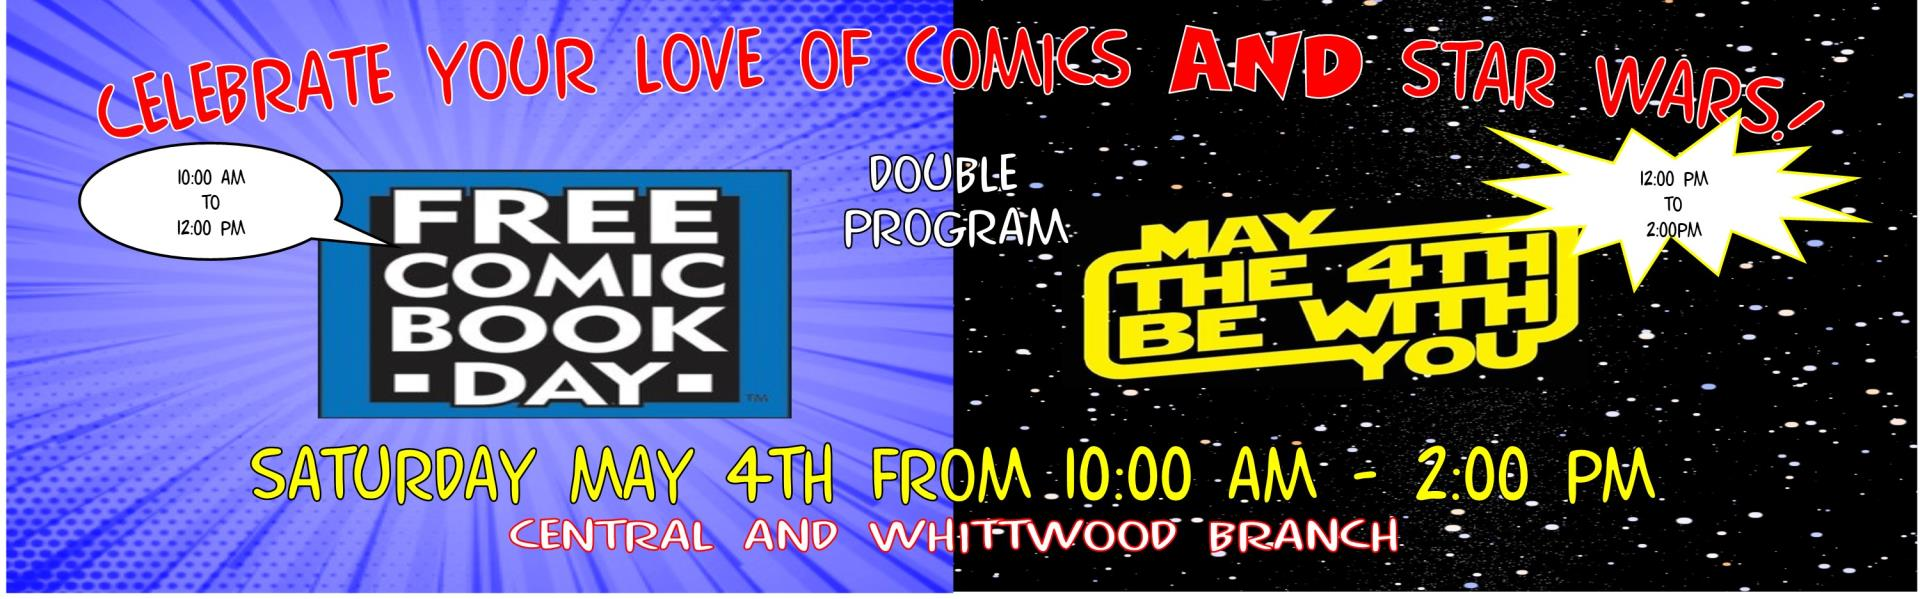 May 4th Free Comic Book Day @ 10:00 a.m.-2:00 p.m.